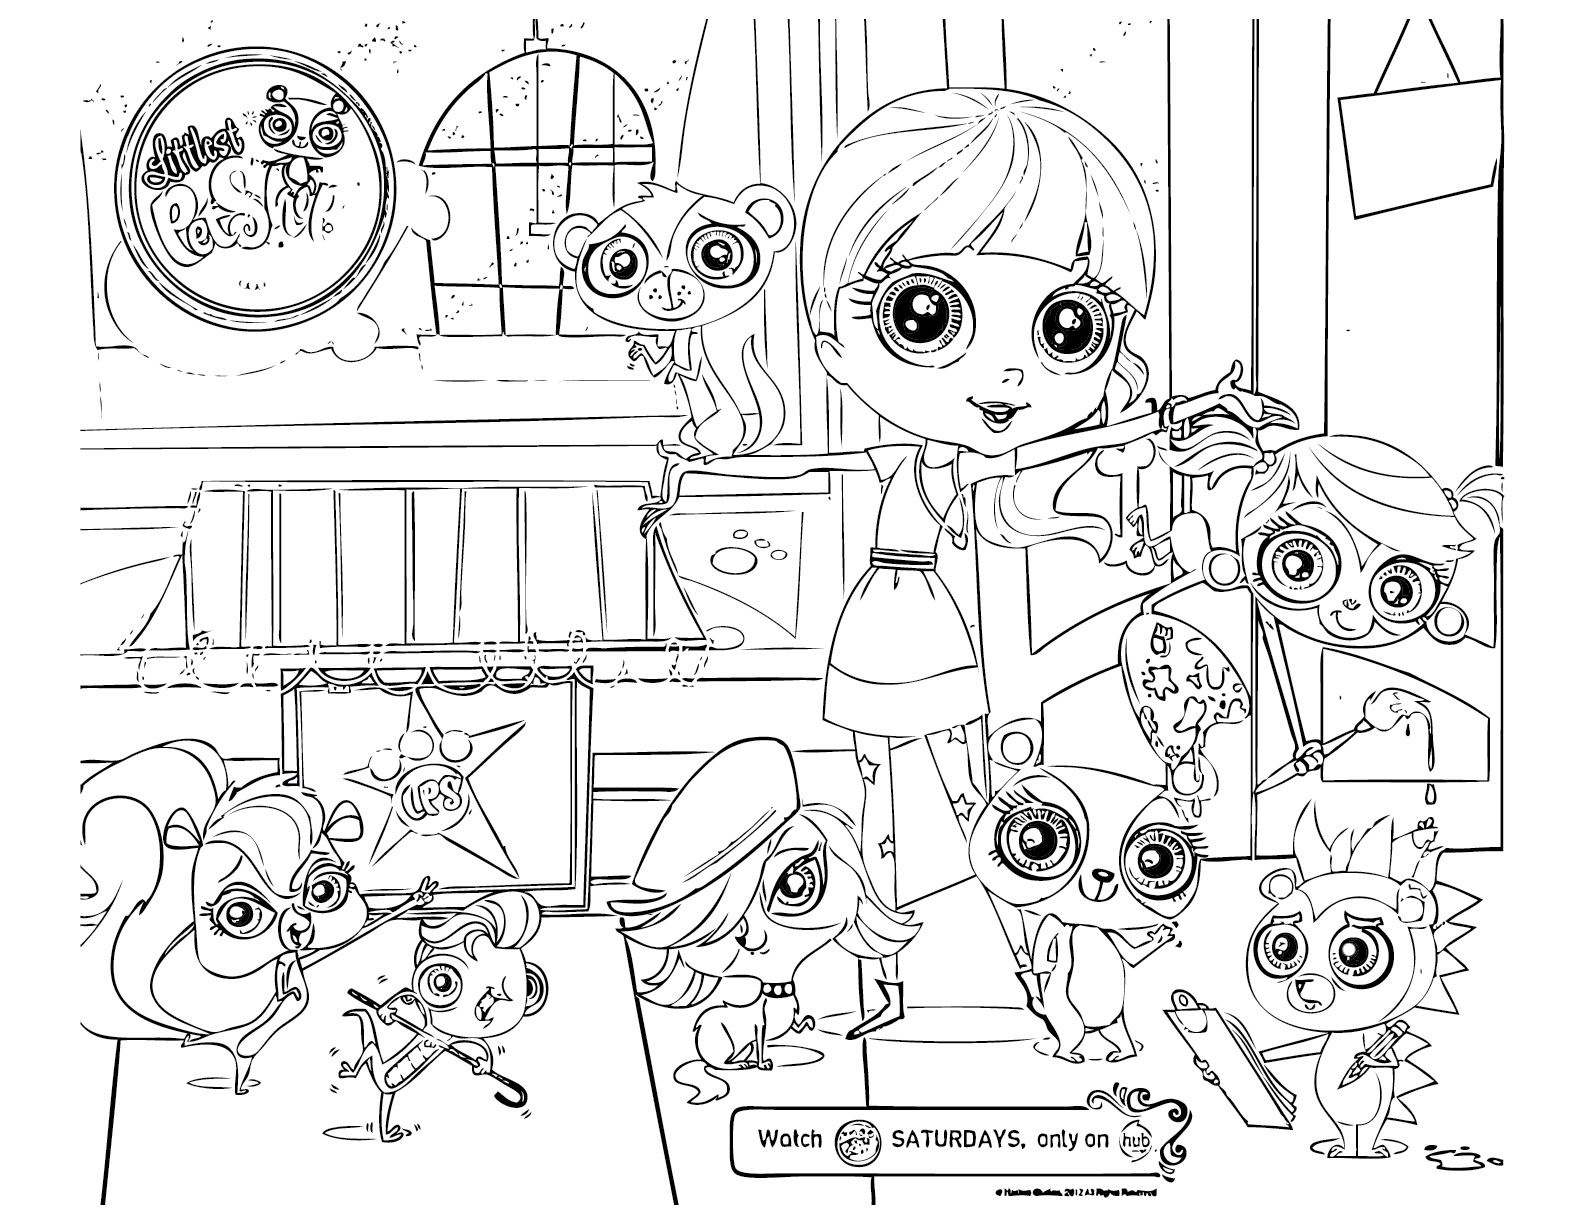 My Littlest Pet Shop Coloring Pages | Free Printable Coloring Pages - Littlest Pet Shop Free Printable Coloring Pages